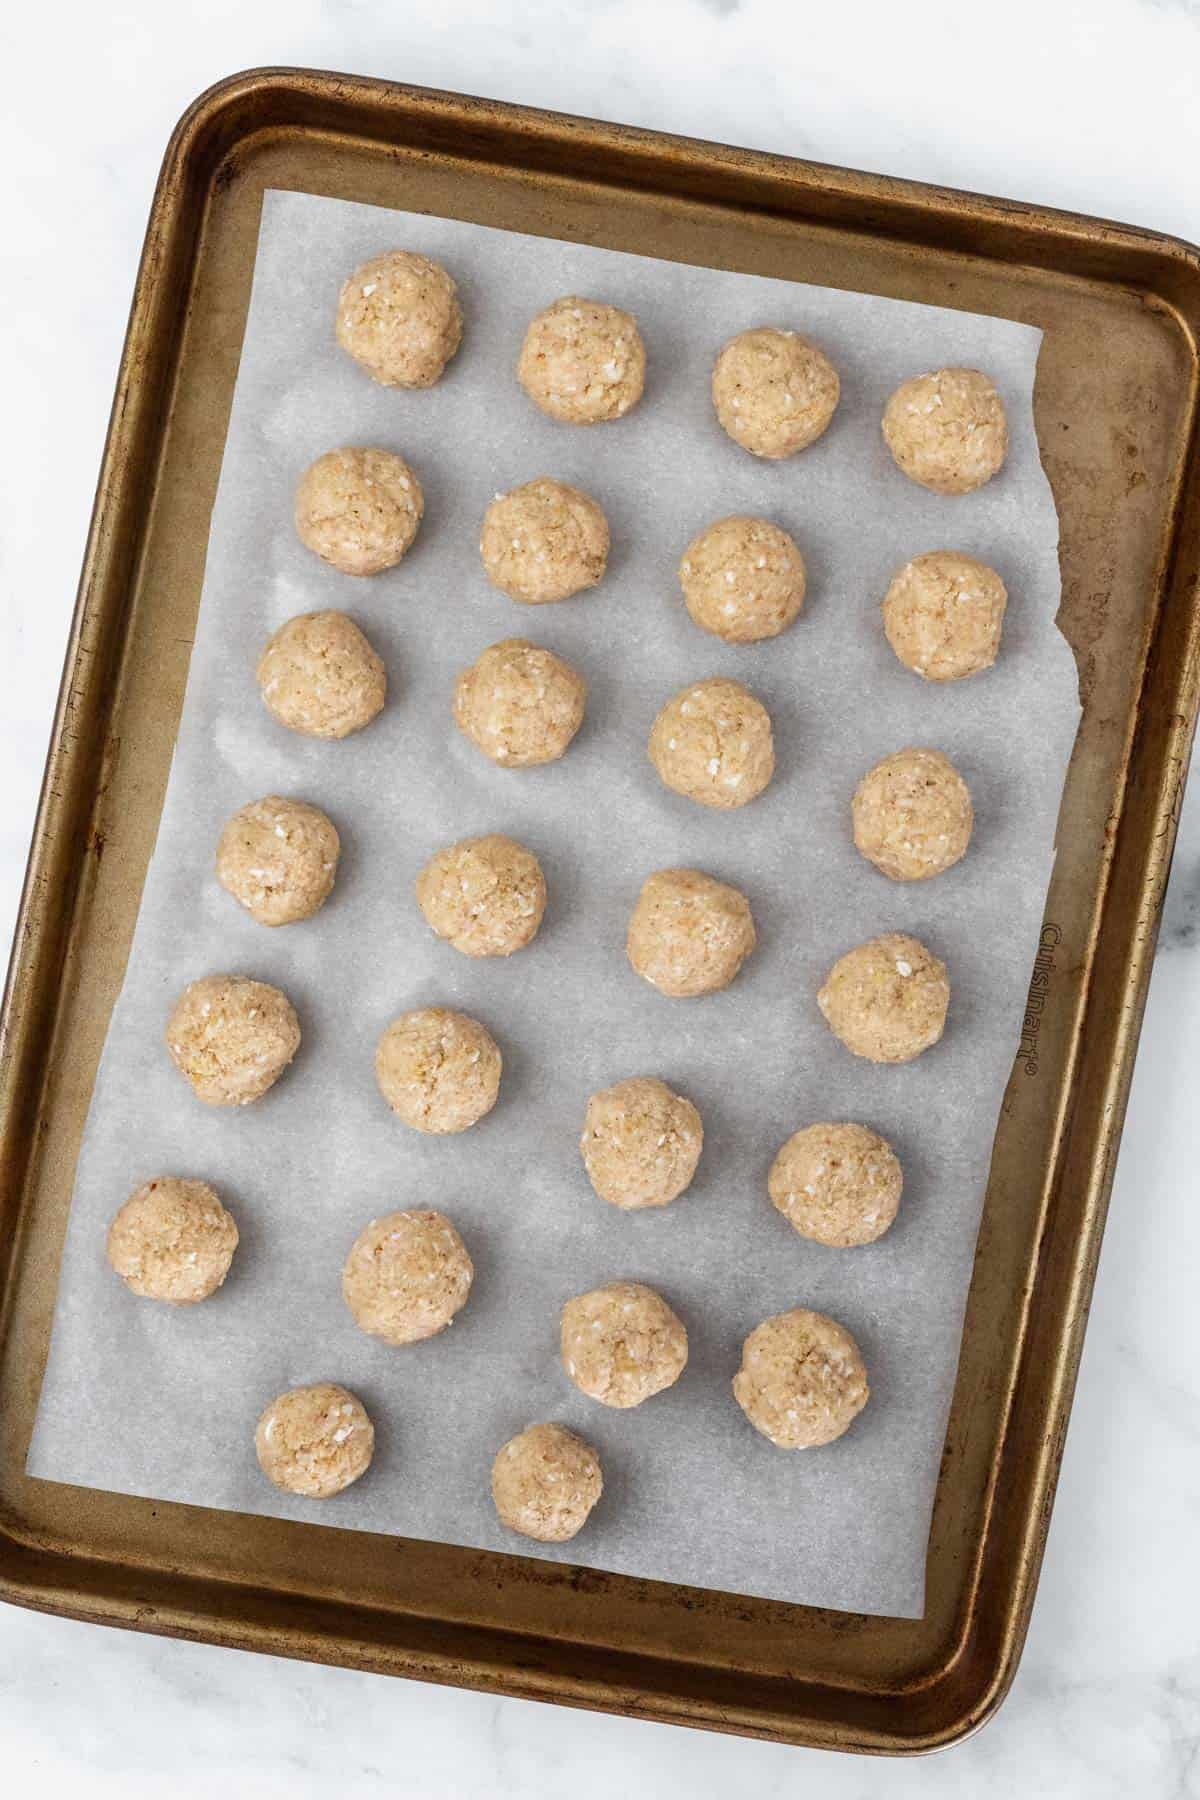 Raw meatballs shaped on a baking sheet lined with parchment paper before being placed in the oven.